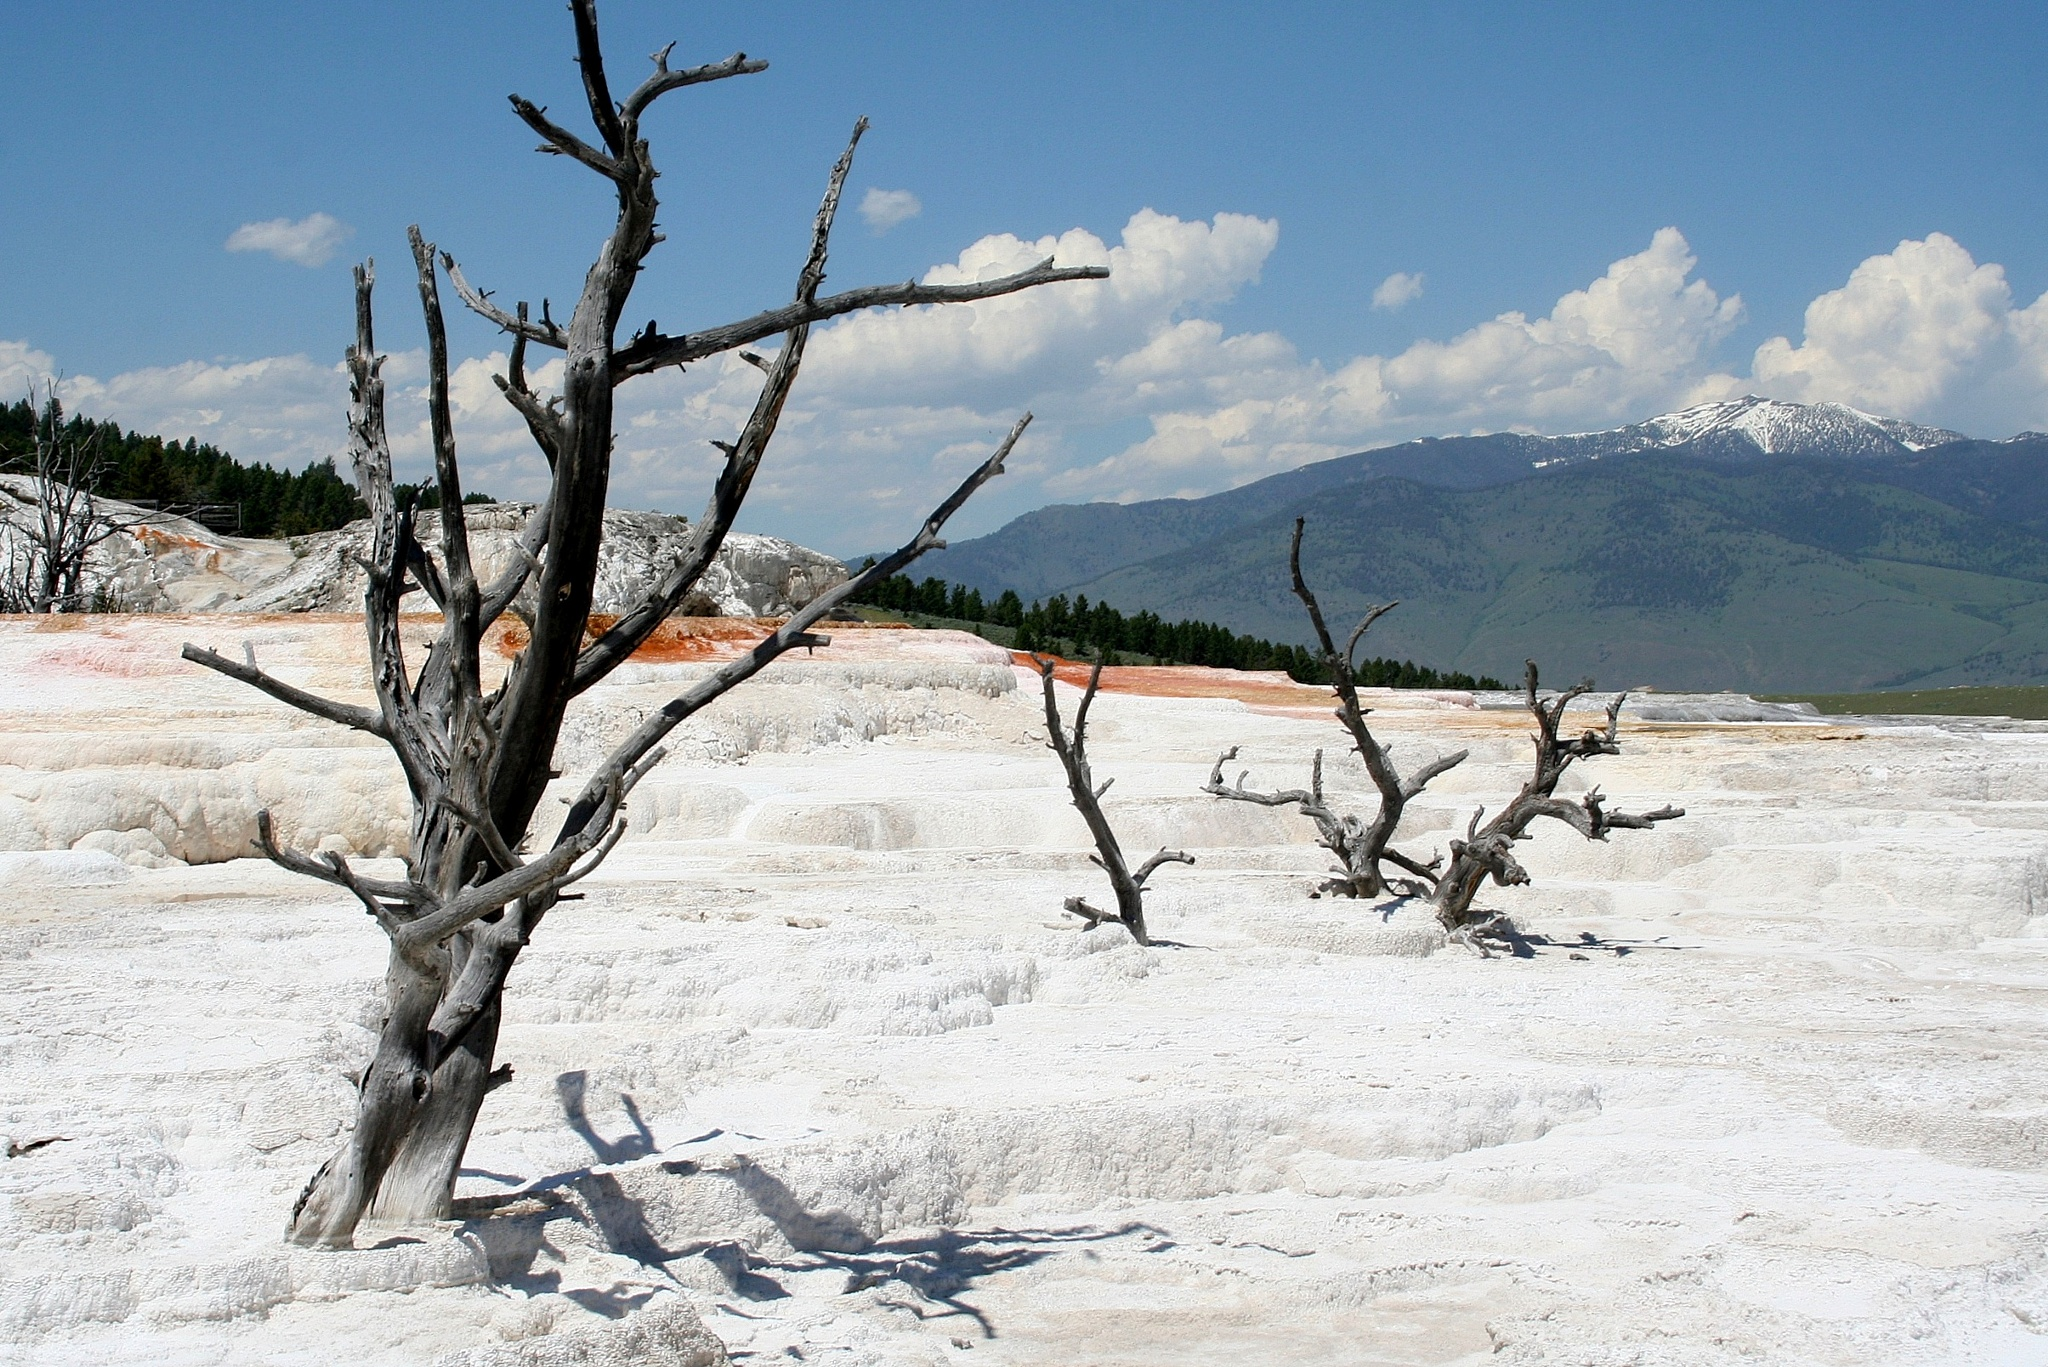 Mammoth Hot Springs, Yellowstone National Park by katze